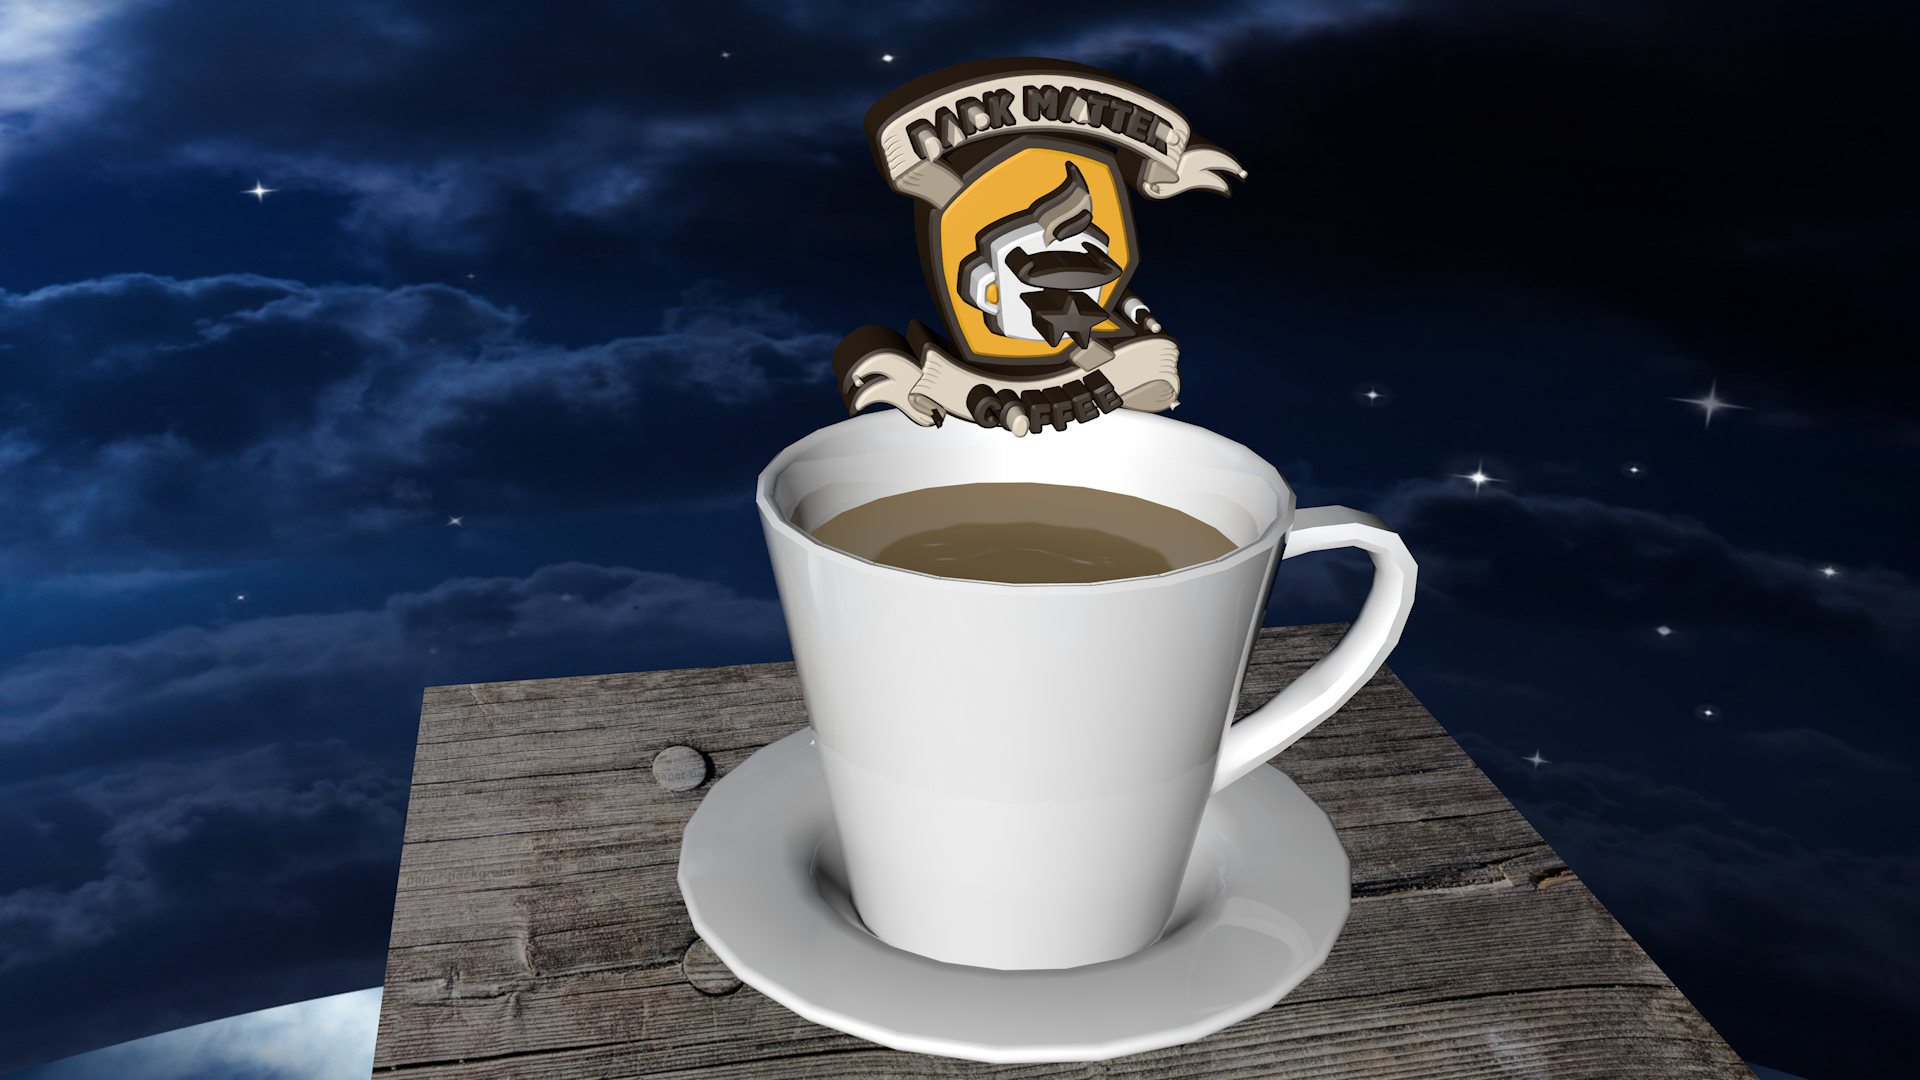 A snapshot of the 3D logo of Dark Matter Coffee being dunked in a cup of coffee.